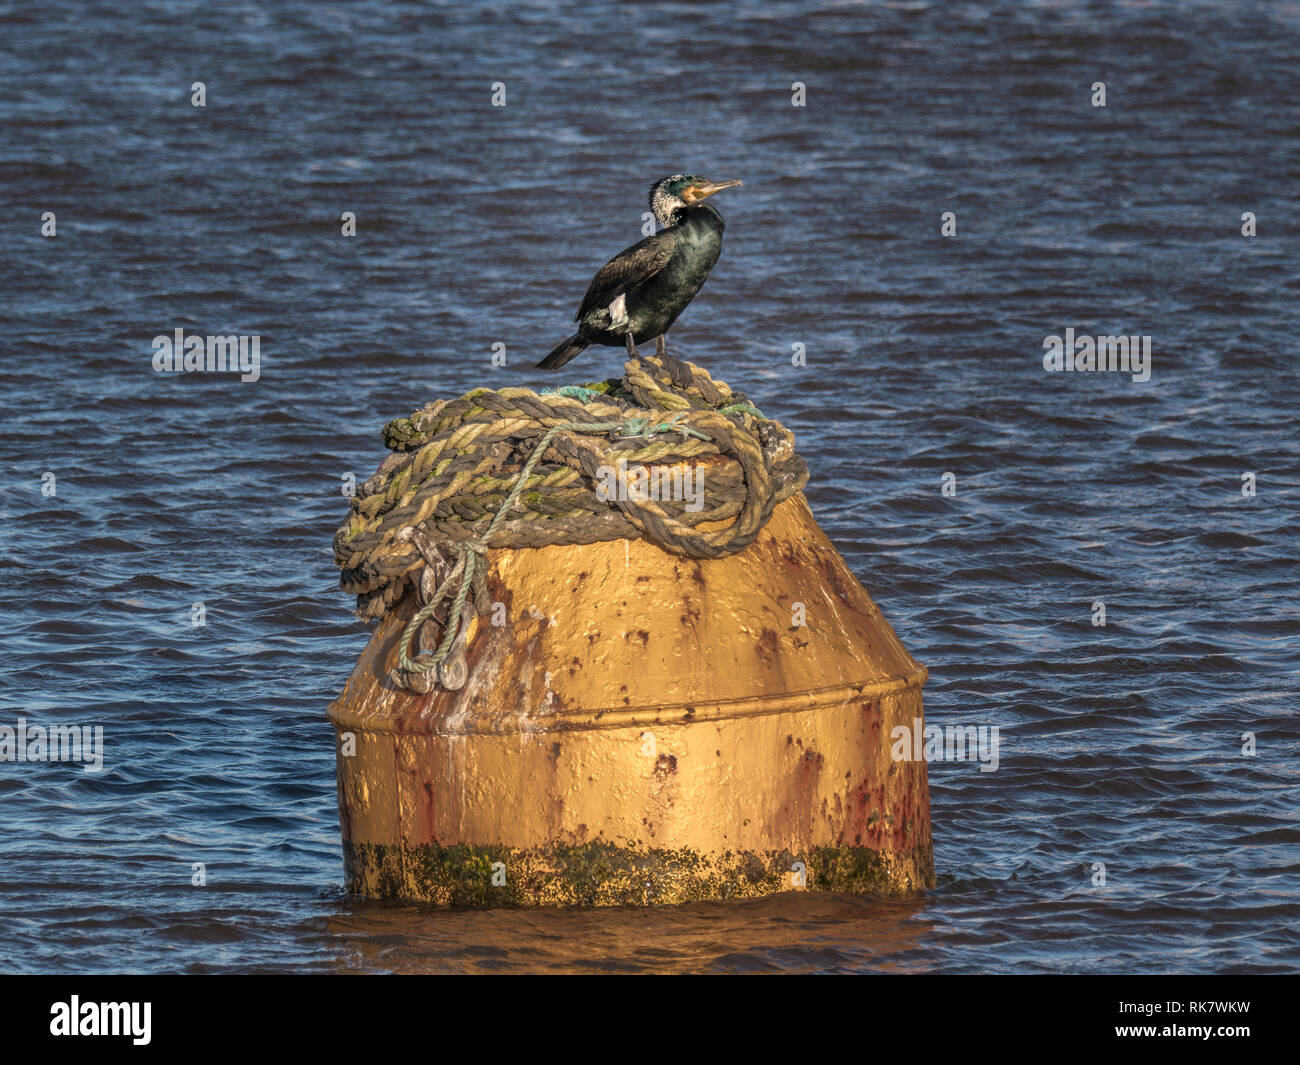 Great Cormorant seabird perched on top of floating buoy in sea - Stock Image